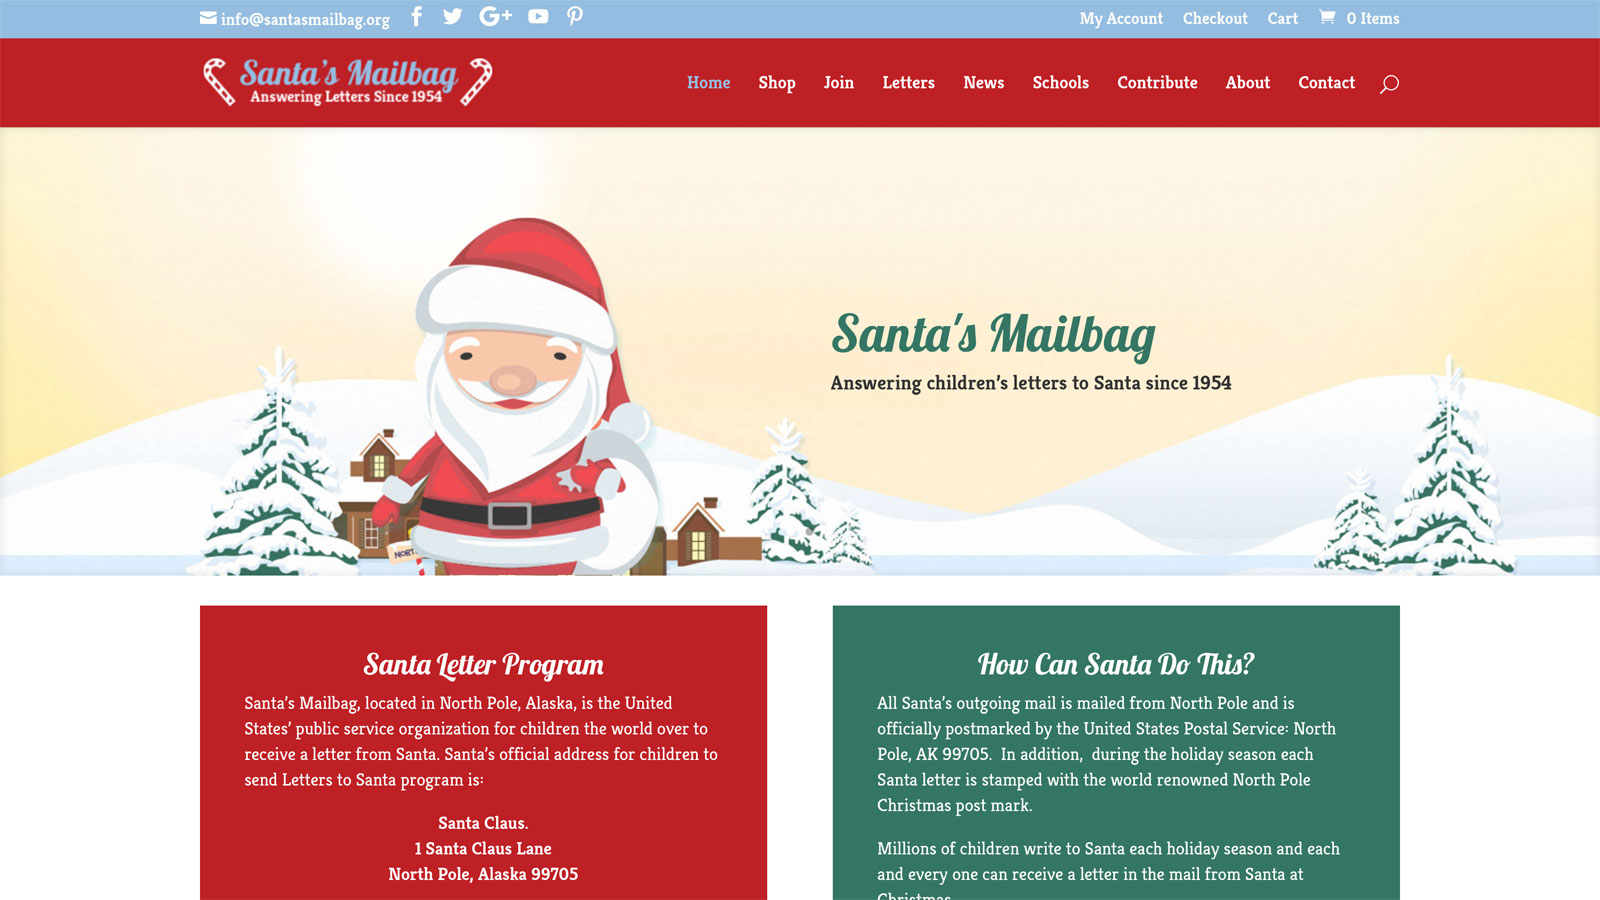 Santas mailbag think far beyond north pole non profit children withletters from santa spiritdancerdesigns Image collections